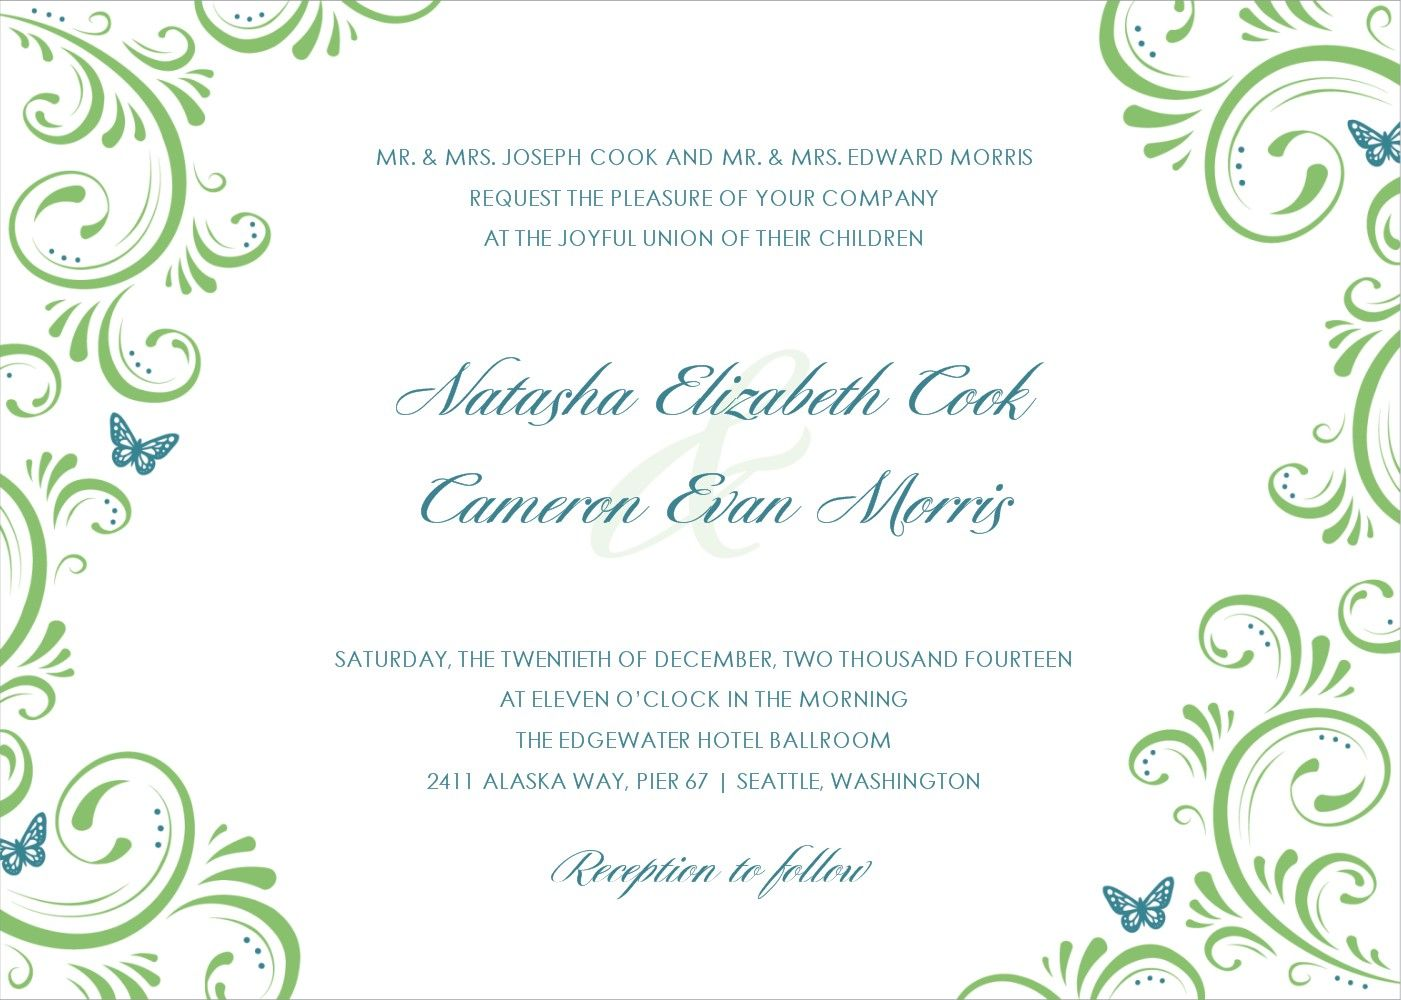 Free Invitation Cards Templates Free Wedding Anniversary Invitation Cards  Templates Stuff To Buy, Wedding Invitation Card Templates Free Vector In  Adobe ...  Free Wedding Invitation Card Templates